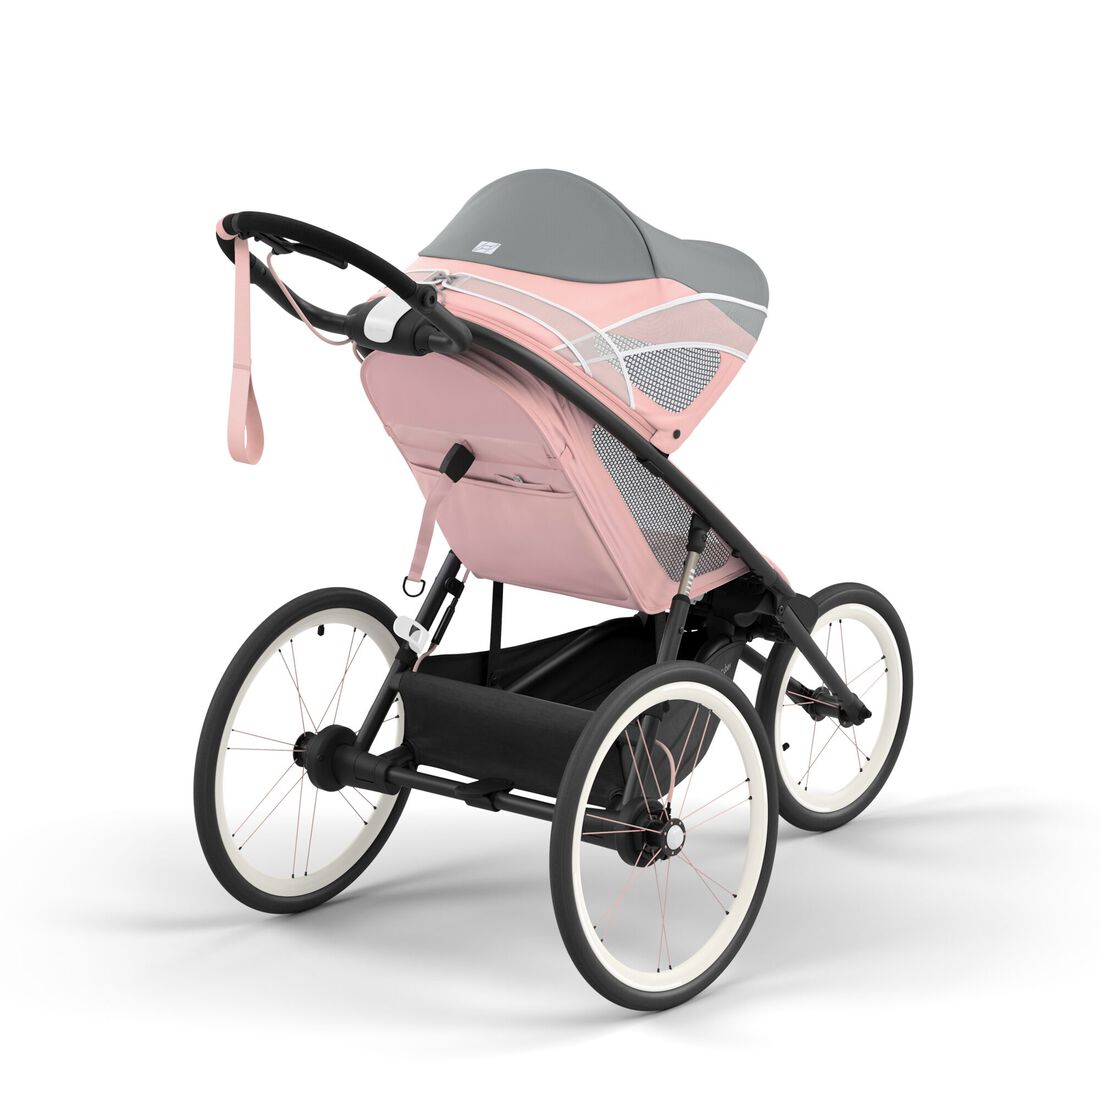 CYBEX Avi Frame - Black With Pink Details in Black With Pink Details large image number 5